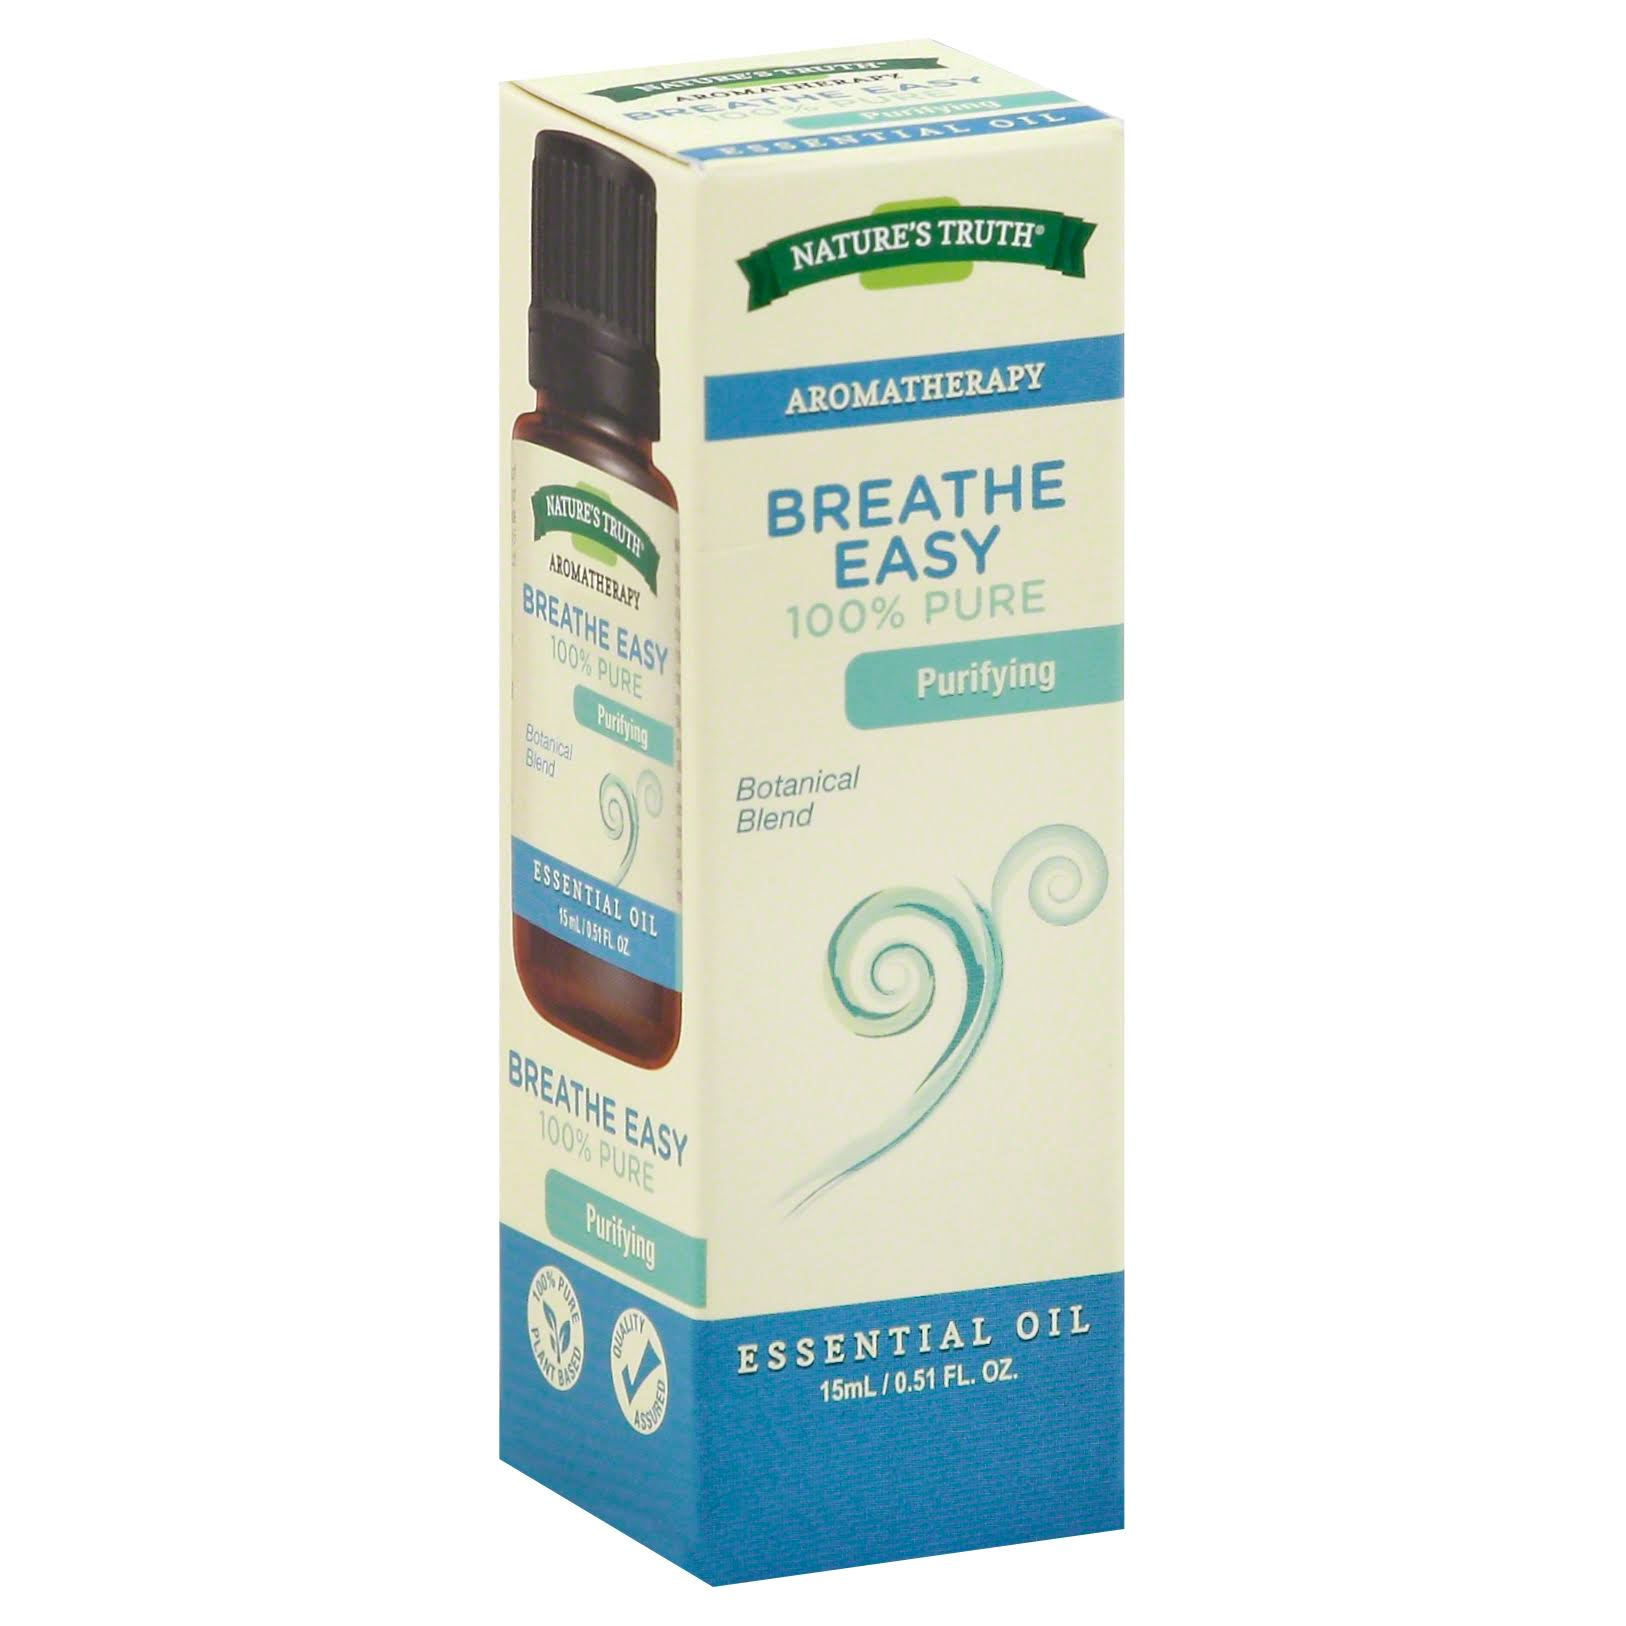 Natures Truth Essential Oil - Breathe Easy, 0.51oz